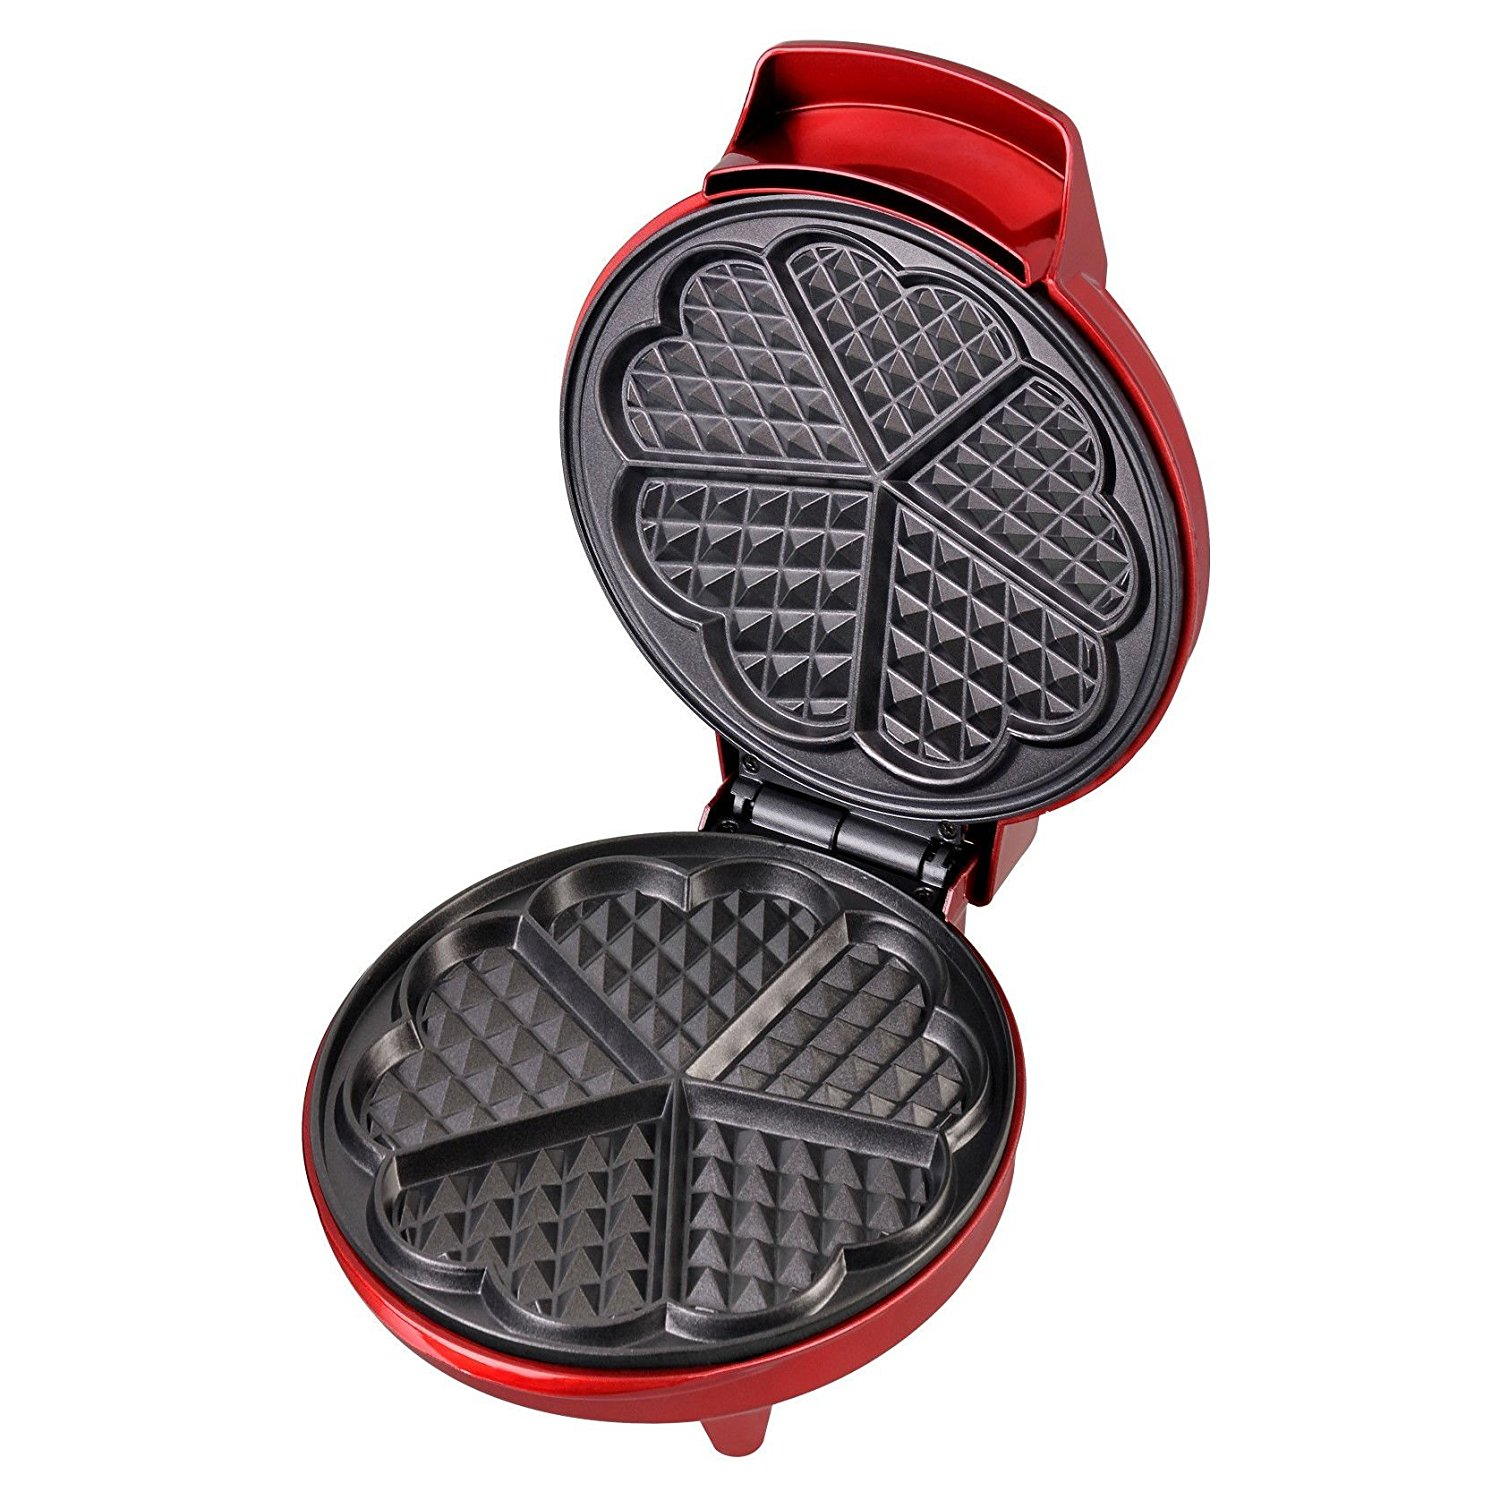 Kitchen Things Red Metallic Heart Shape Waffle Maker, 7 heart-shaped cooking plates By Kalorik